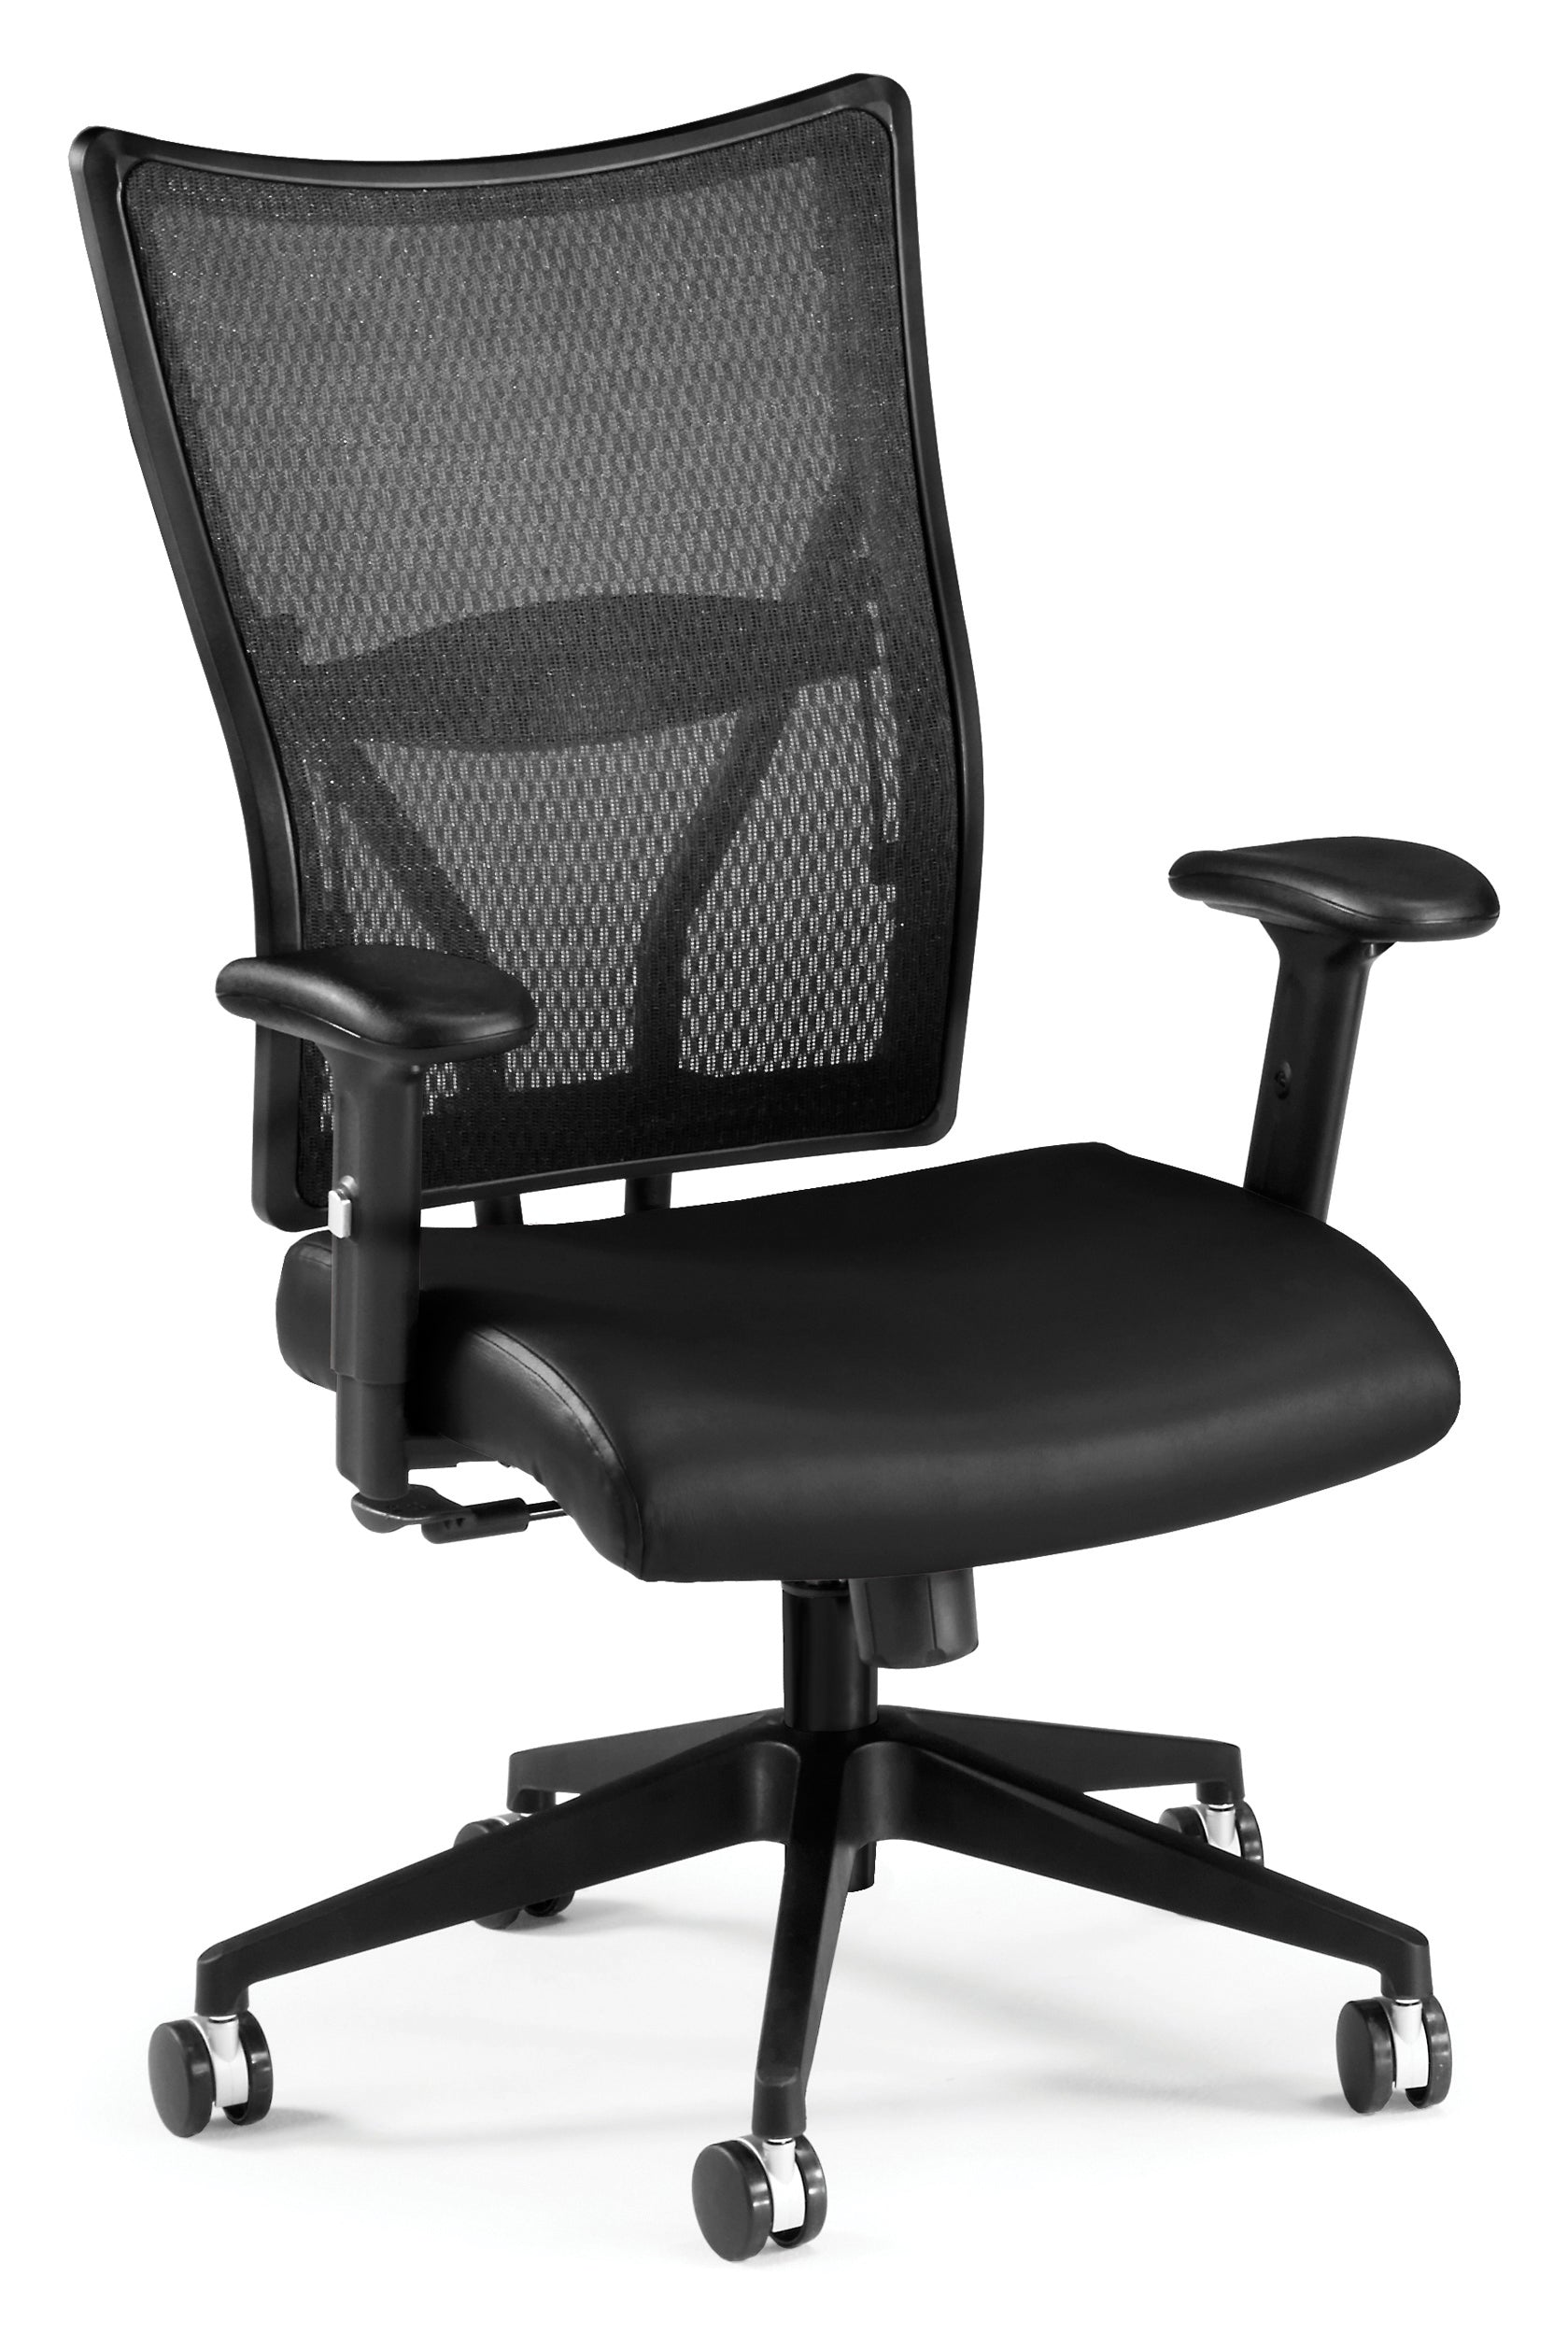 Model 591-L Talisto Series High-Back Leather / Mesh Office Chair